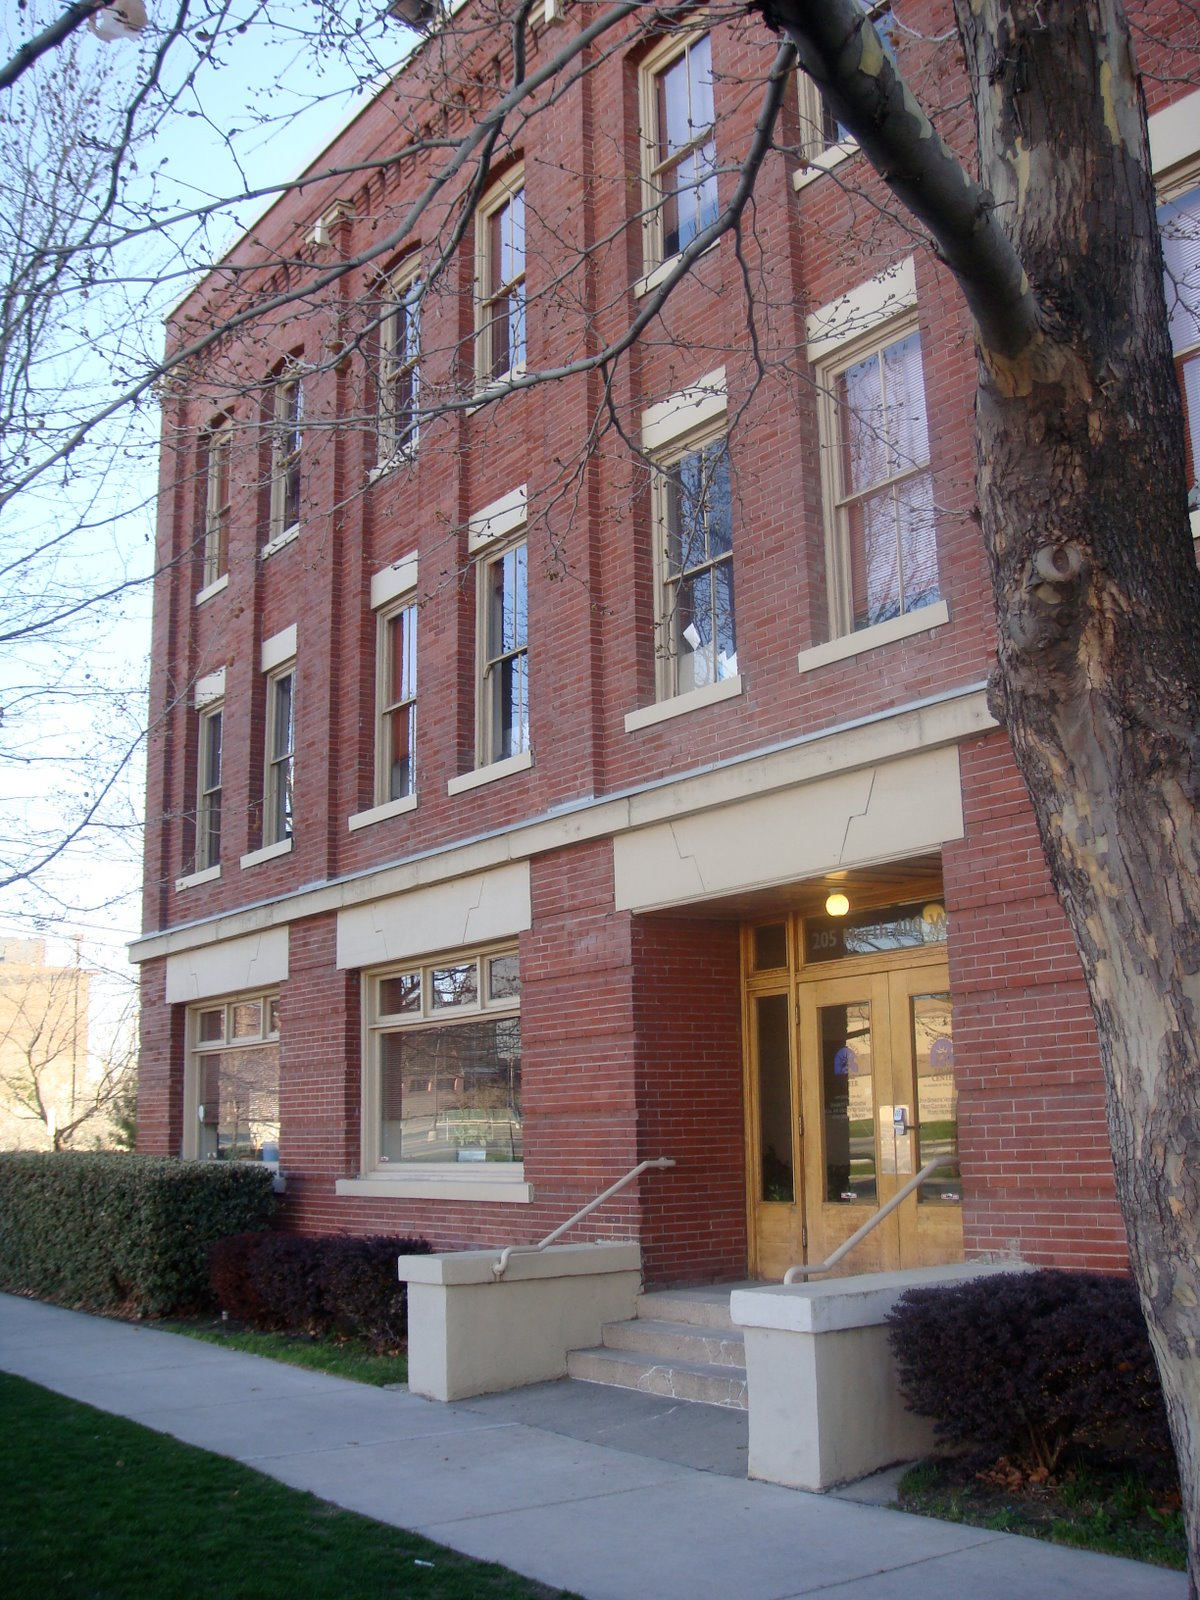 The Community Legal Center houses the Legal Aid Society of Salt Lake, as well as other non-profit legal aid organizations.